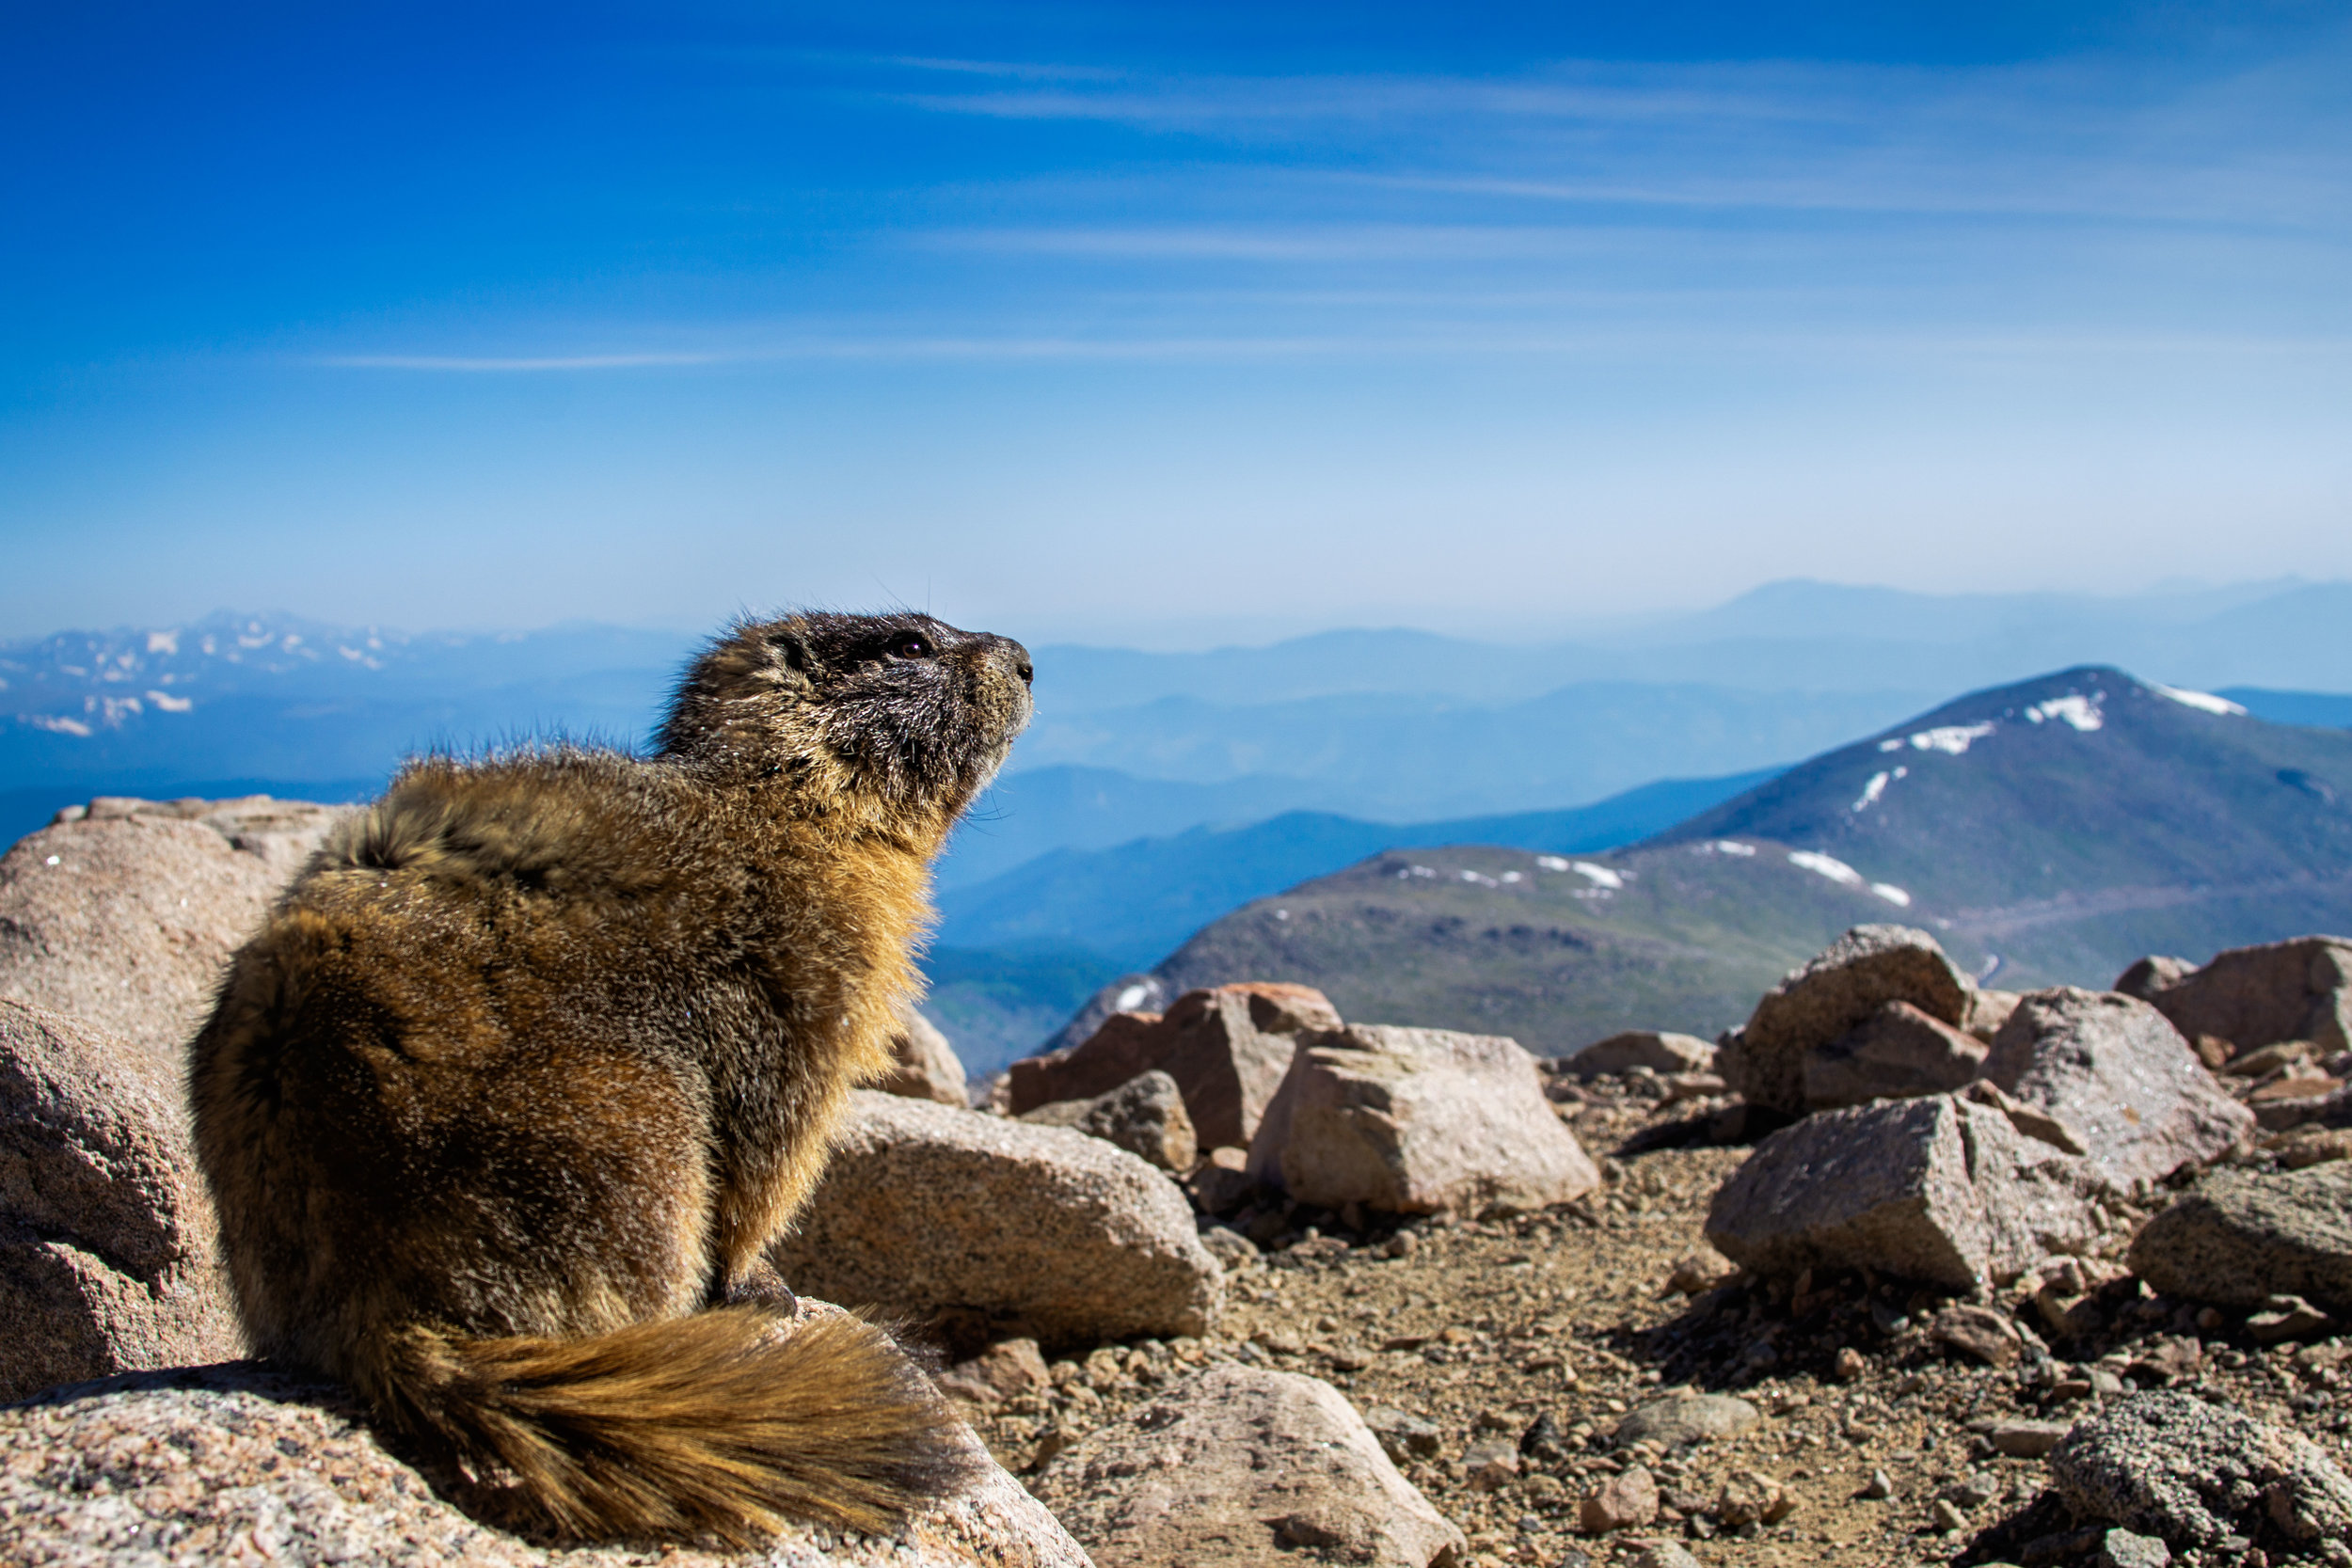 vickygood_travel_photography_colorado_mt.evans3.jpg